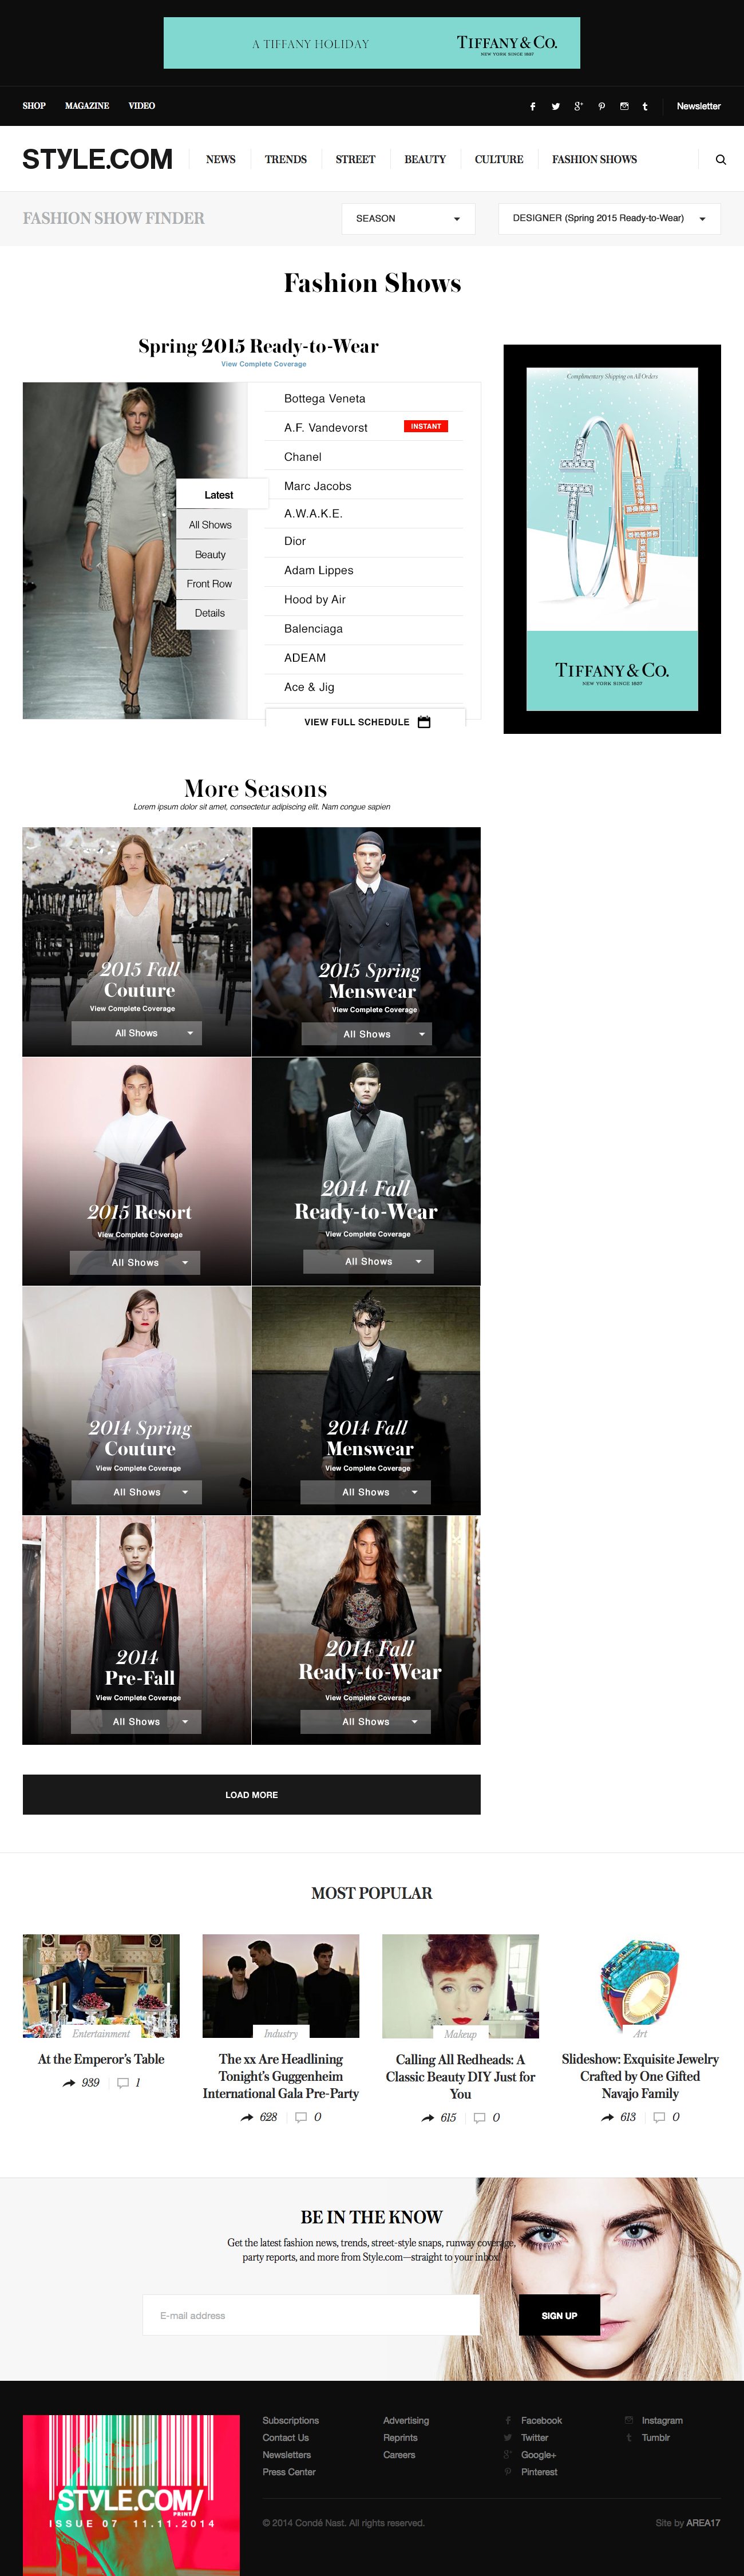 12012014-Fashion-shows-index-LATEST-INSEASON-PRODUCTION